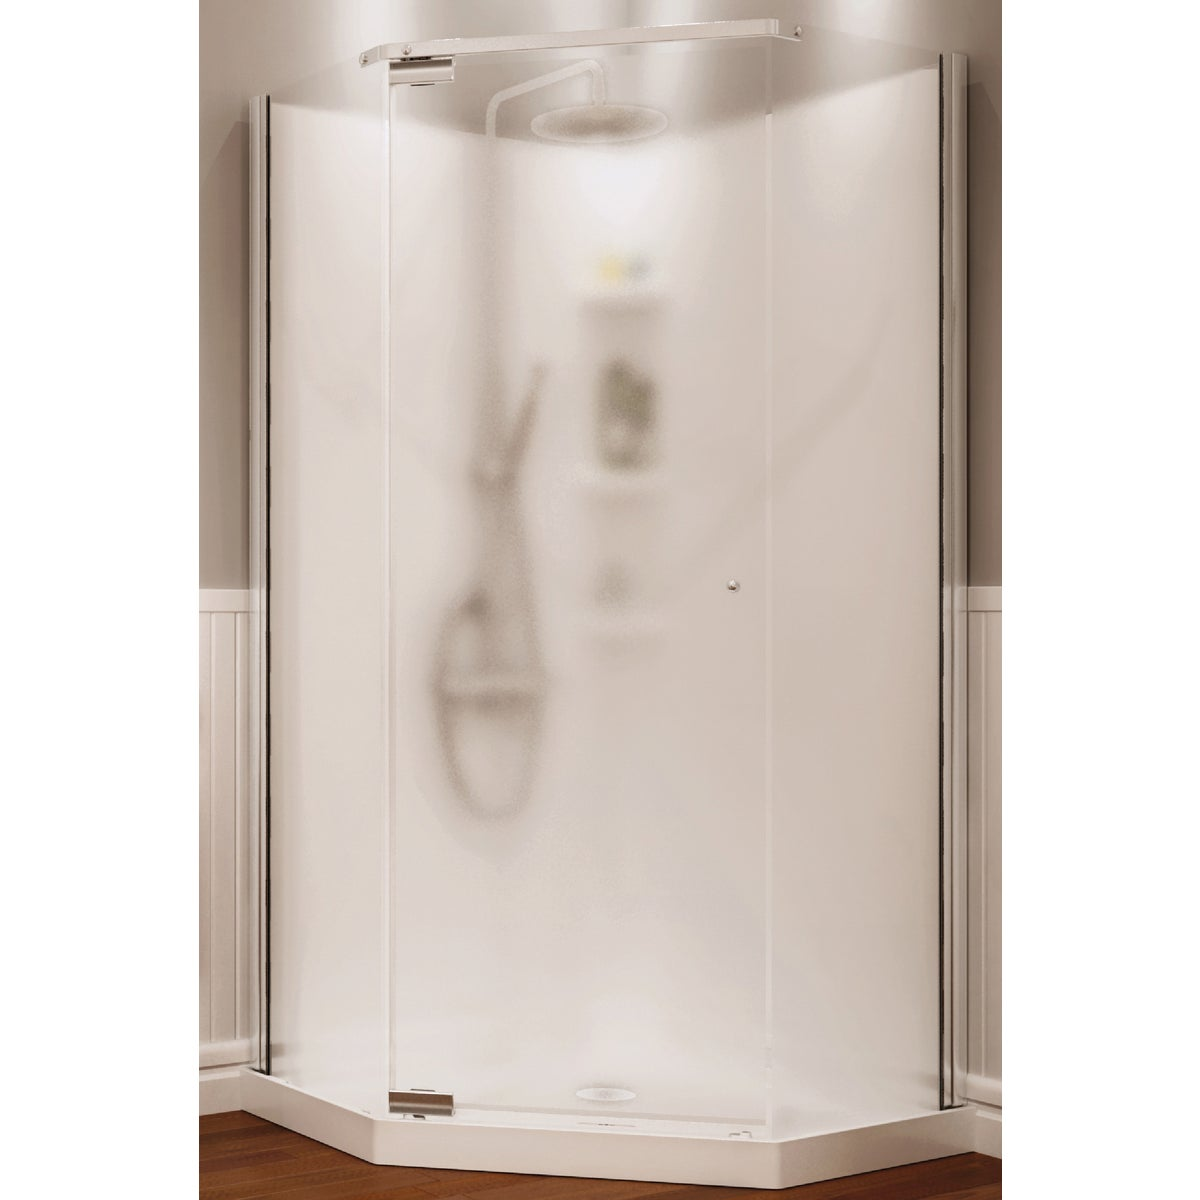 FRAMELESS NEO SHOWER - 105544-129 by Maax Bath